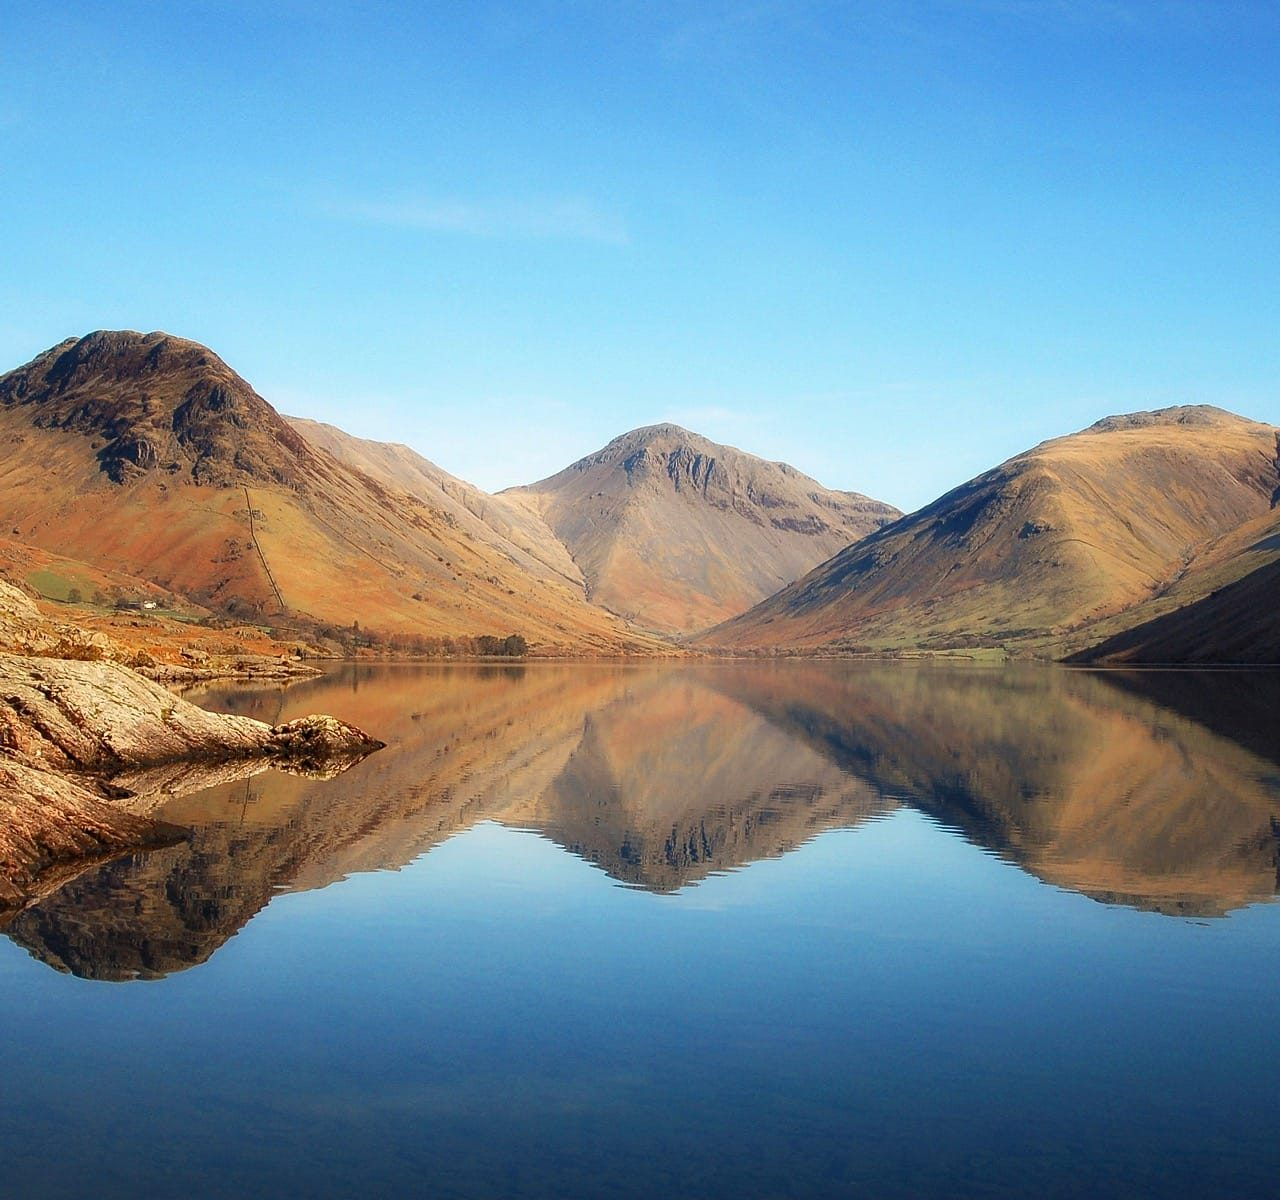 The view of the Wasdale fells from the foot of Wastwater, shot in the Spring, with perfect reflections. Fells are Yewbarrow on the left, Great Gable in the centre, and Lingmell on the right.